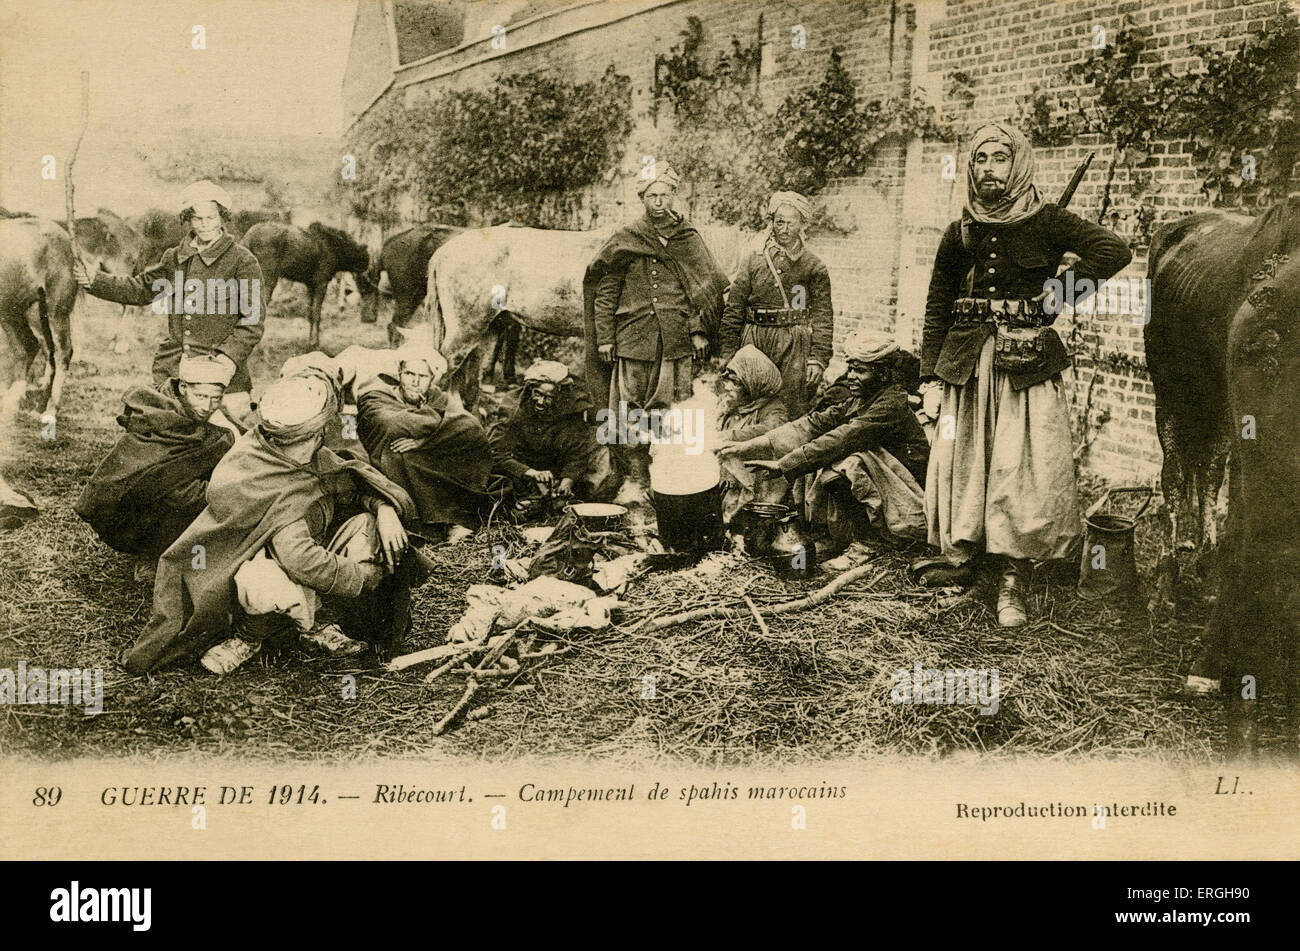 World War 1: Encampment of Morrocan Spahis at Ribécourt, France. Light cavalry regiments of the French army - Stock Image